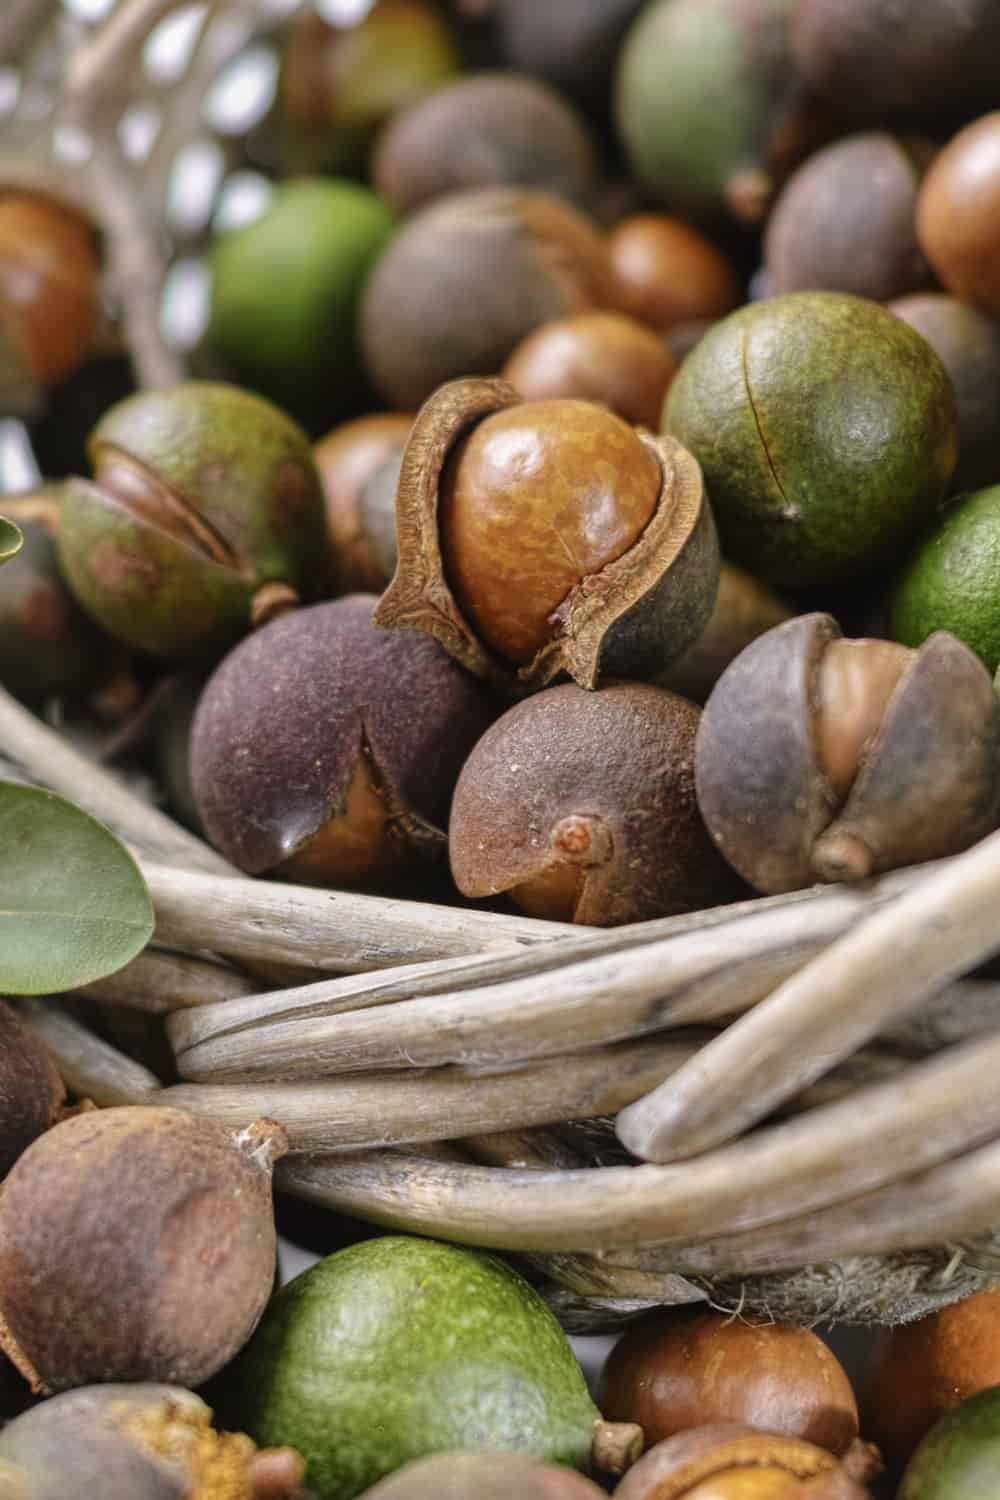 How to Tell If Macadamia Nuts Have Gone Bad